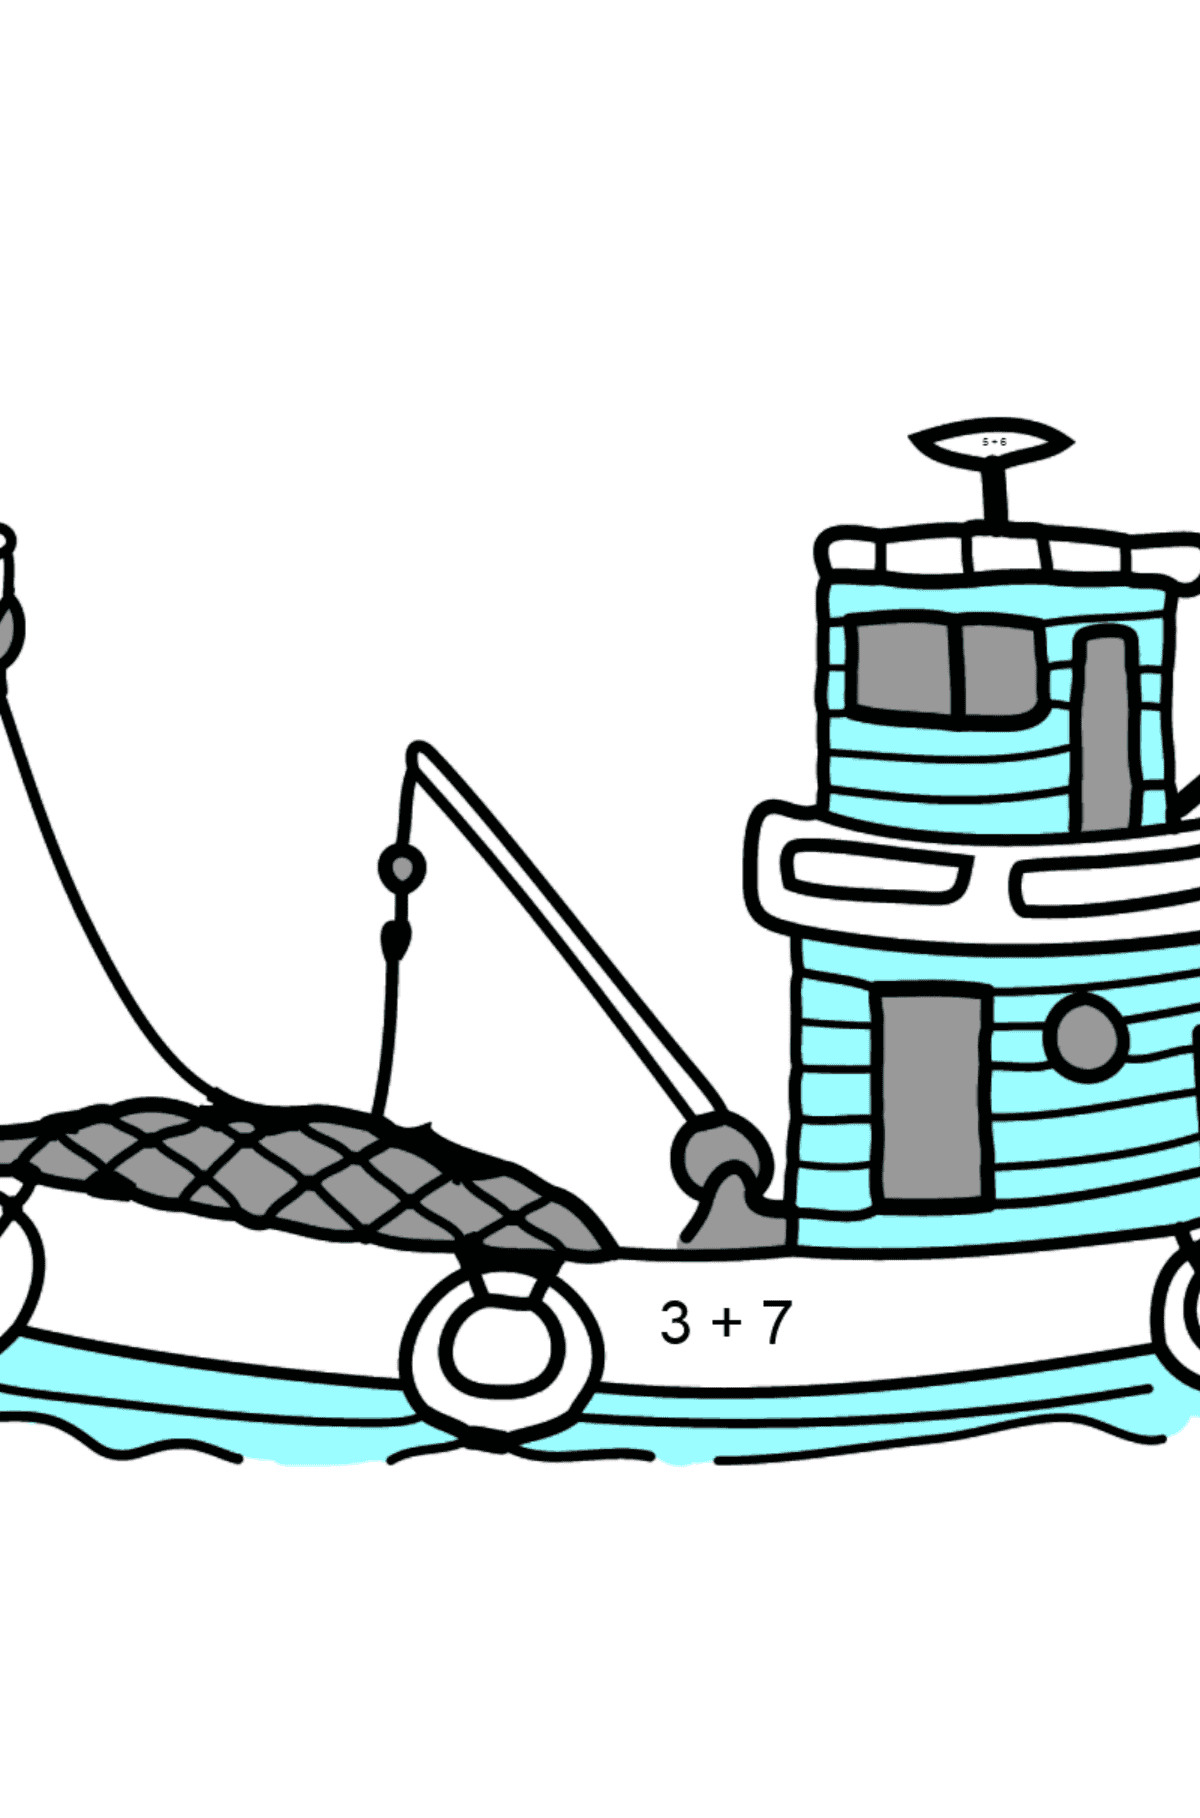 Coloring Page - A Fishing Boat - Math Coloring - Addition for Kids